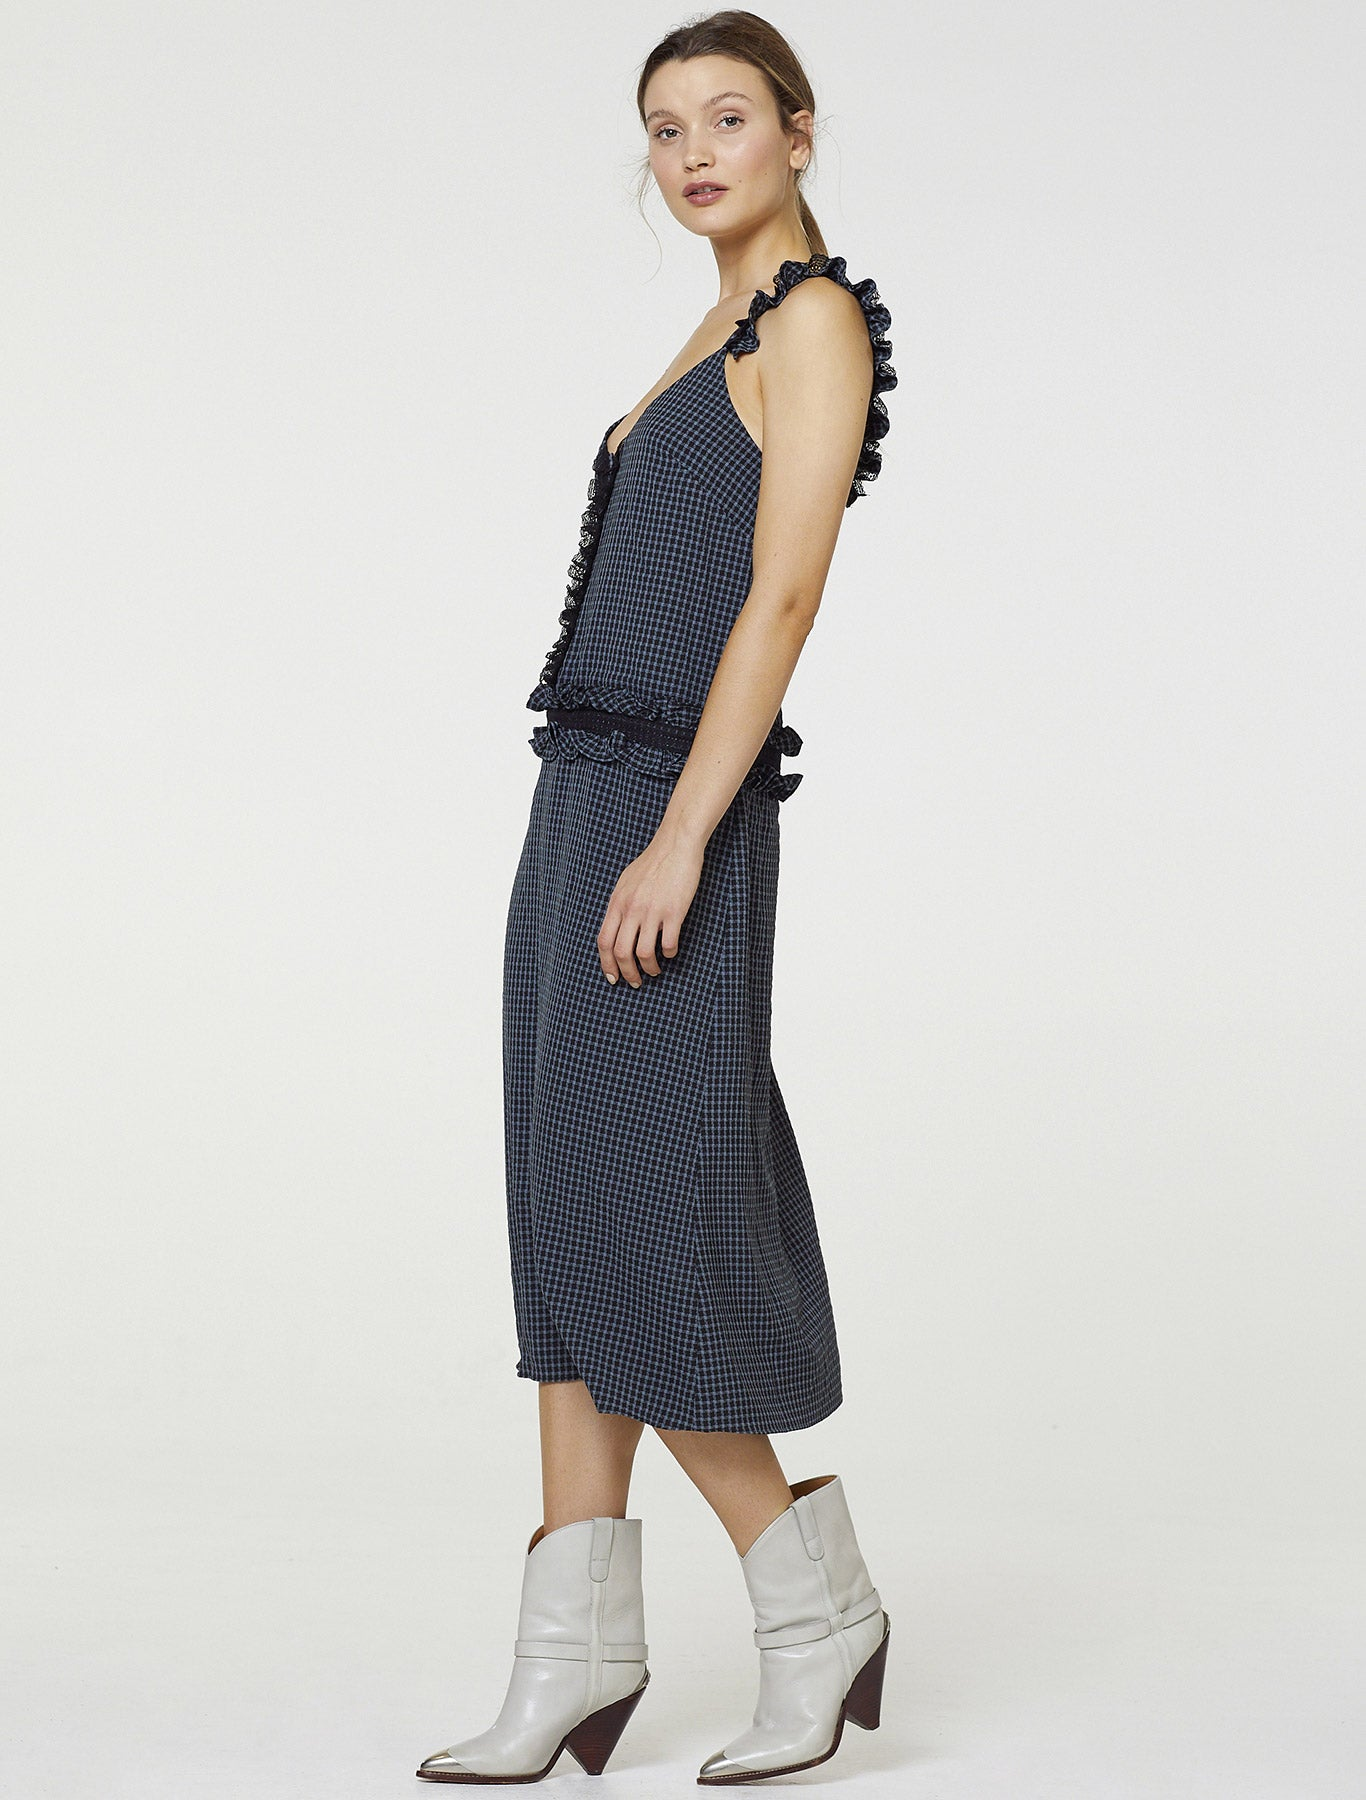 THE TWIST MIDI DRESS